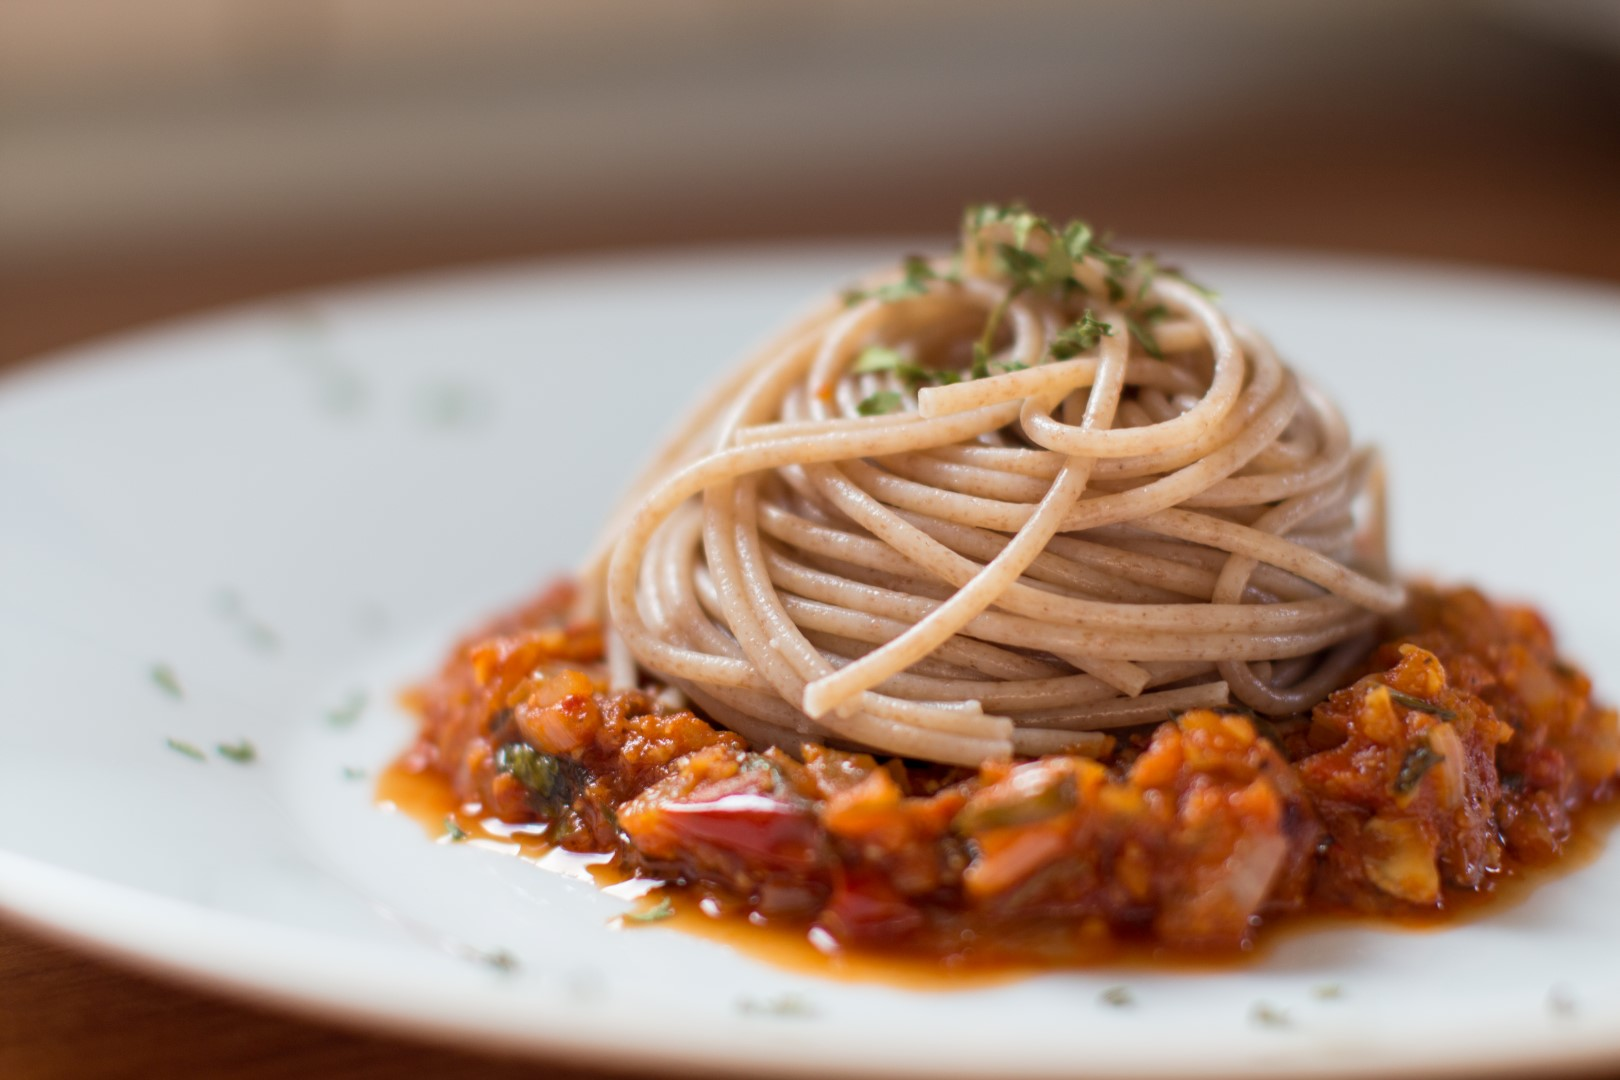 Spaghetti with tomato sauce with peanuts